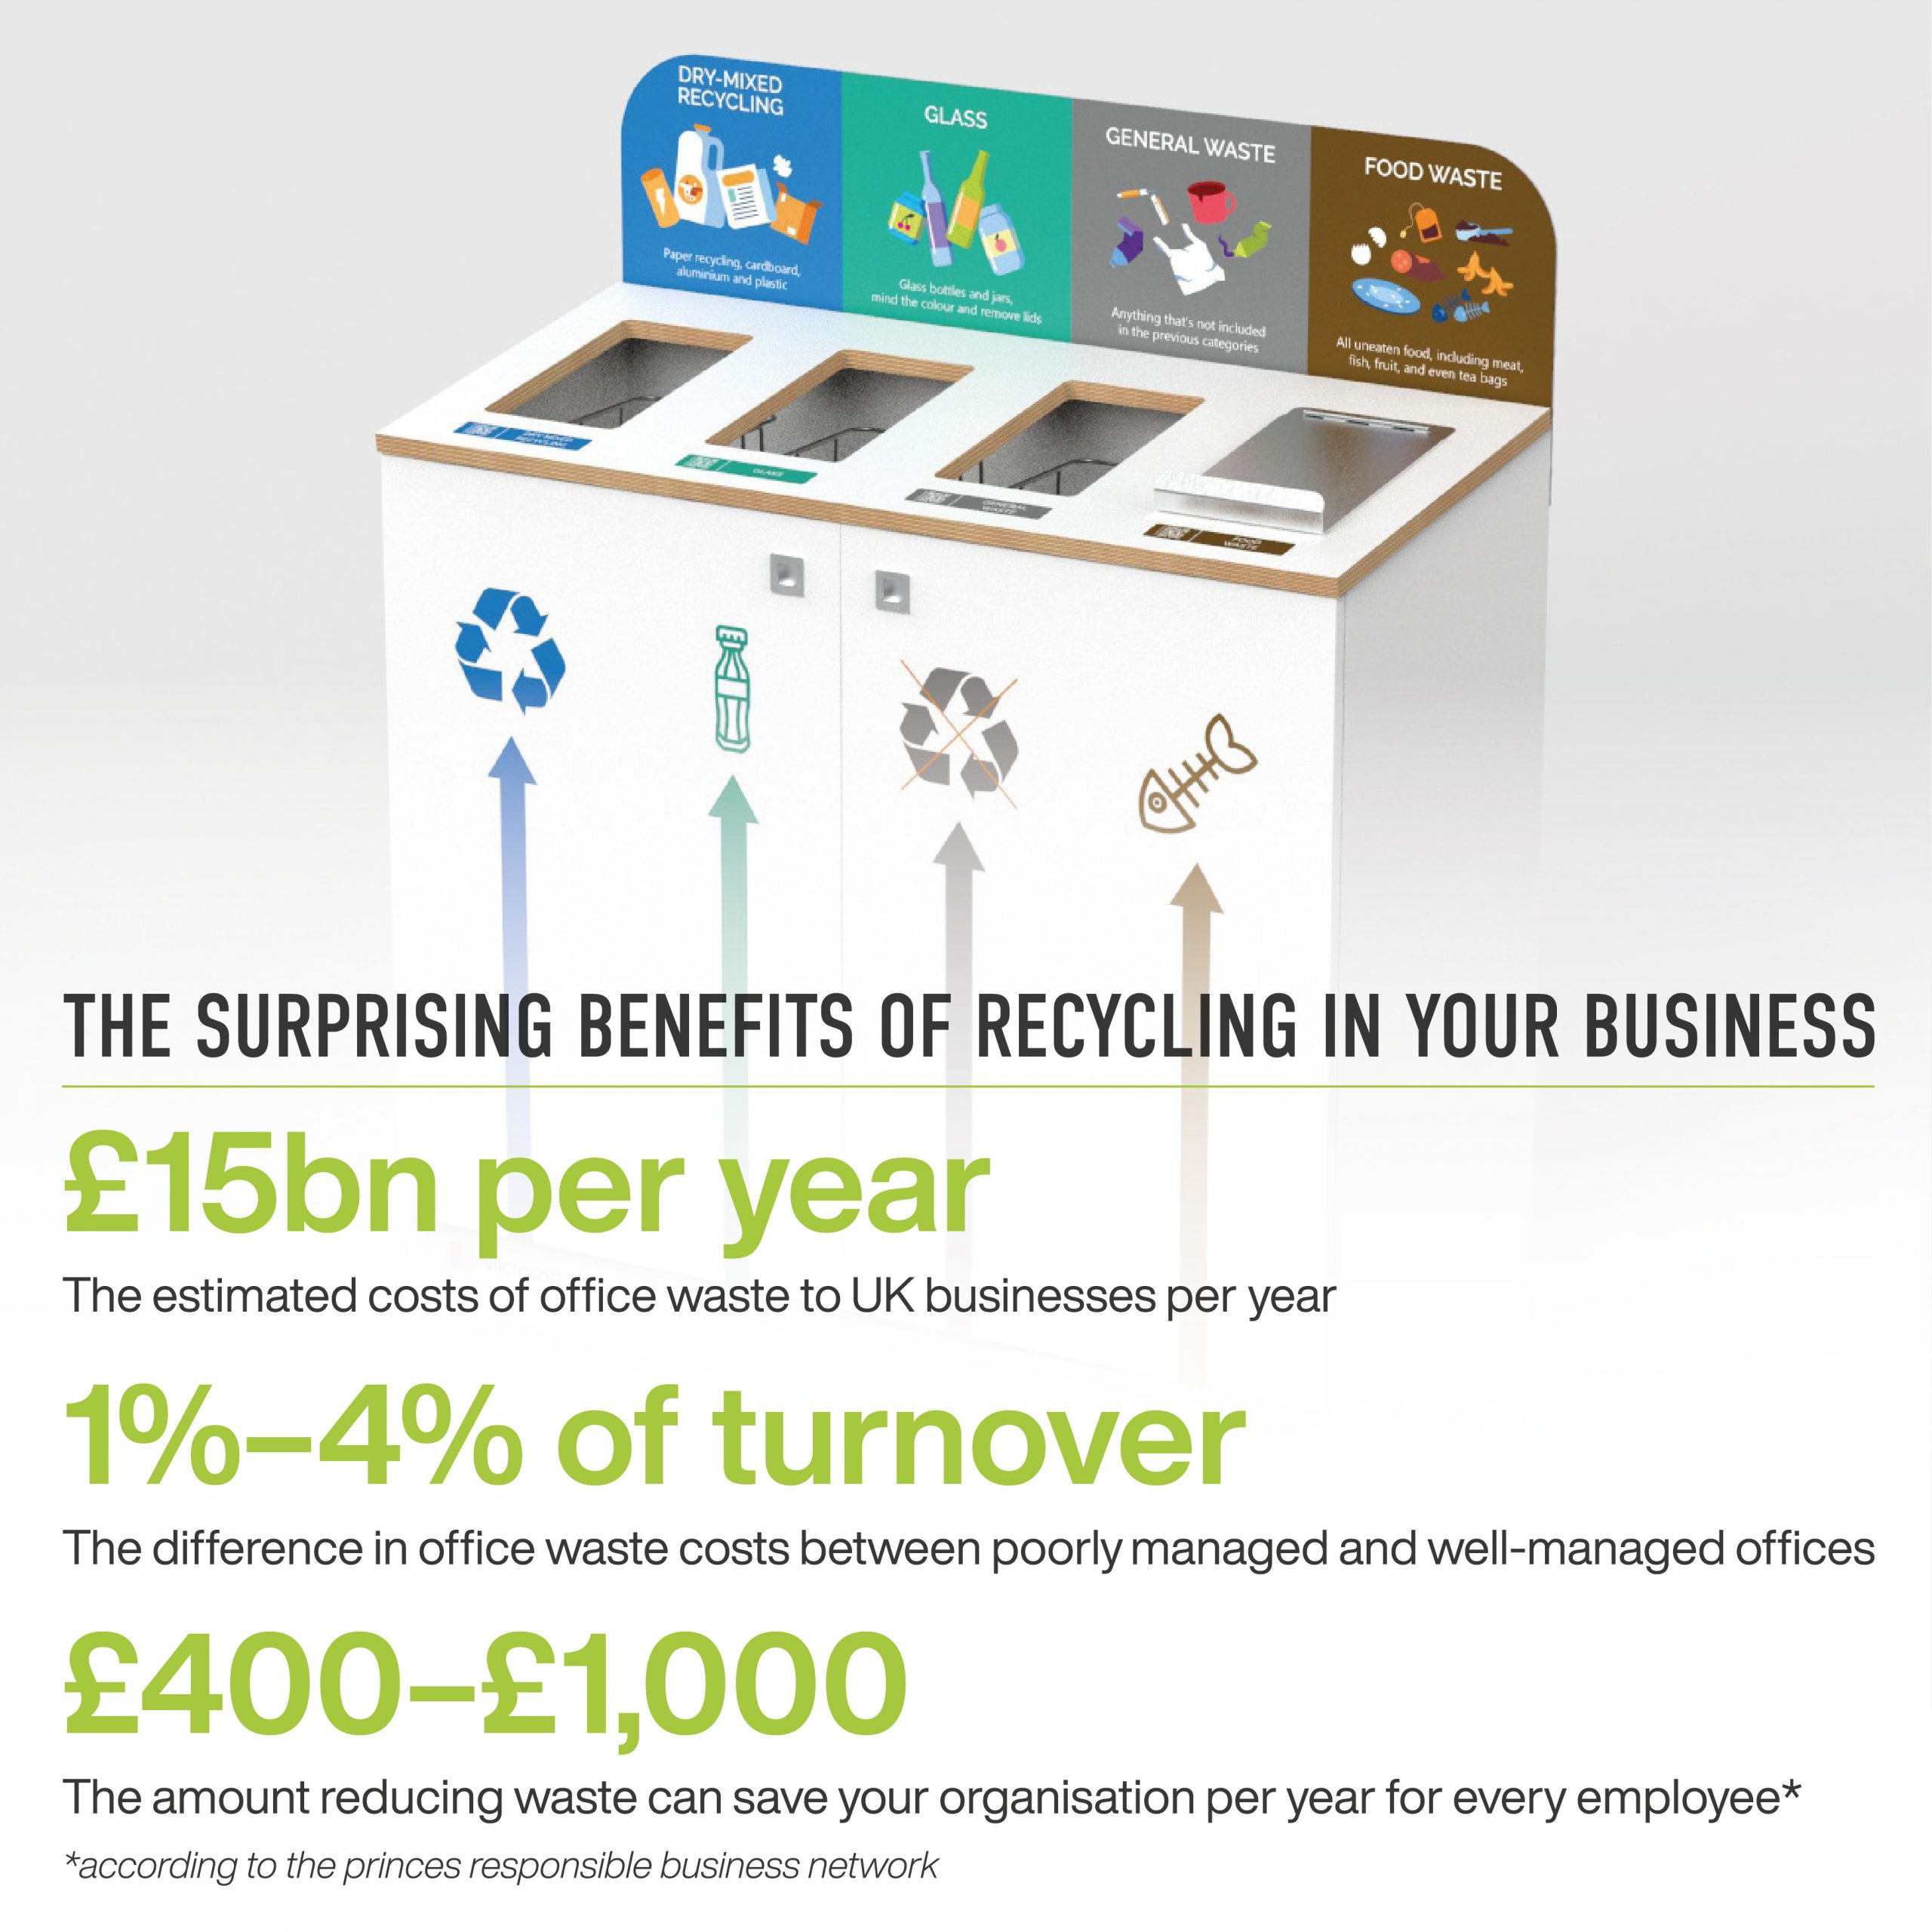 The surprising benefits of recycling in your business